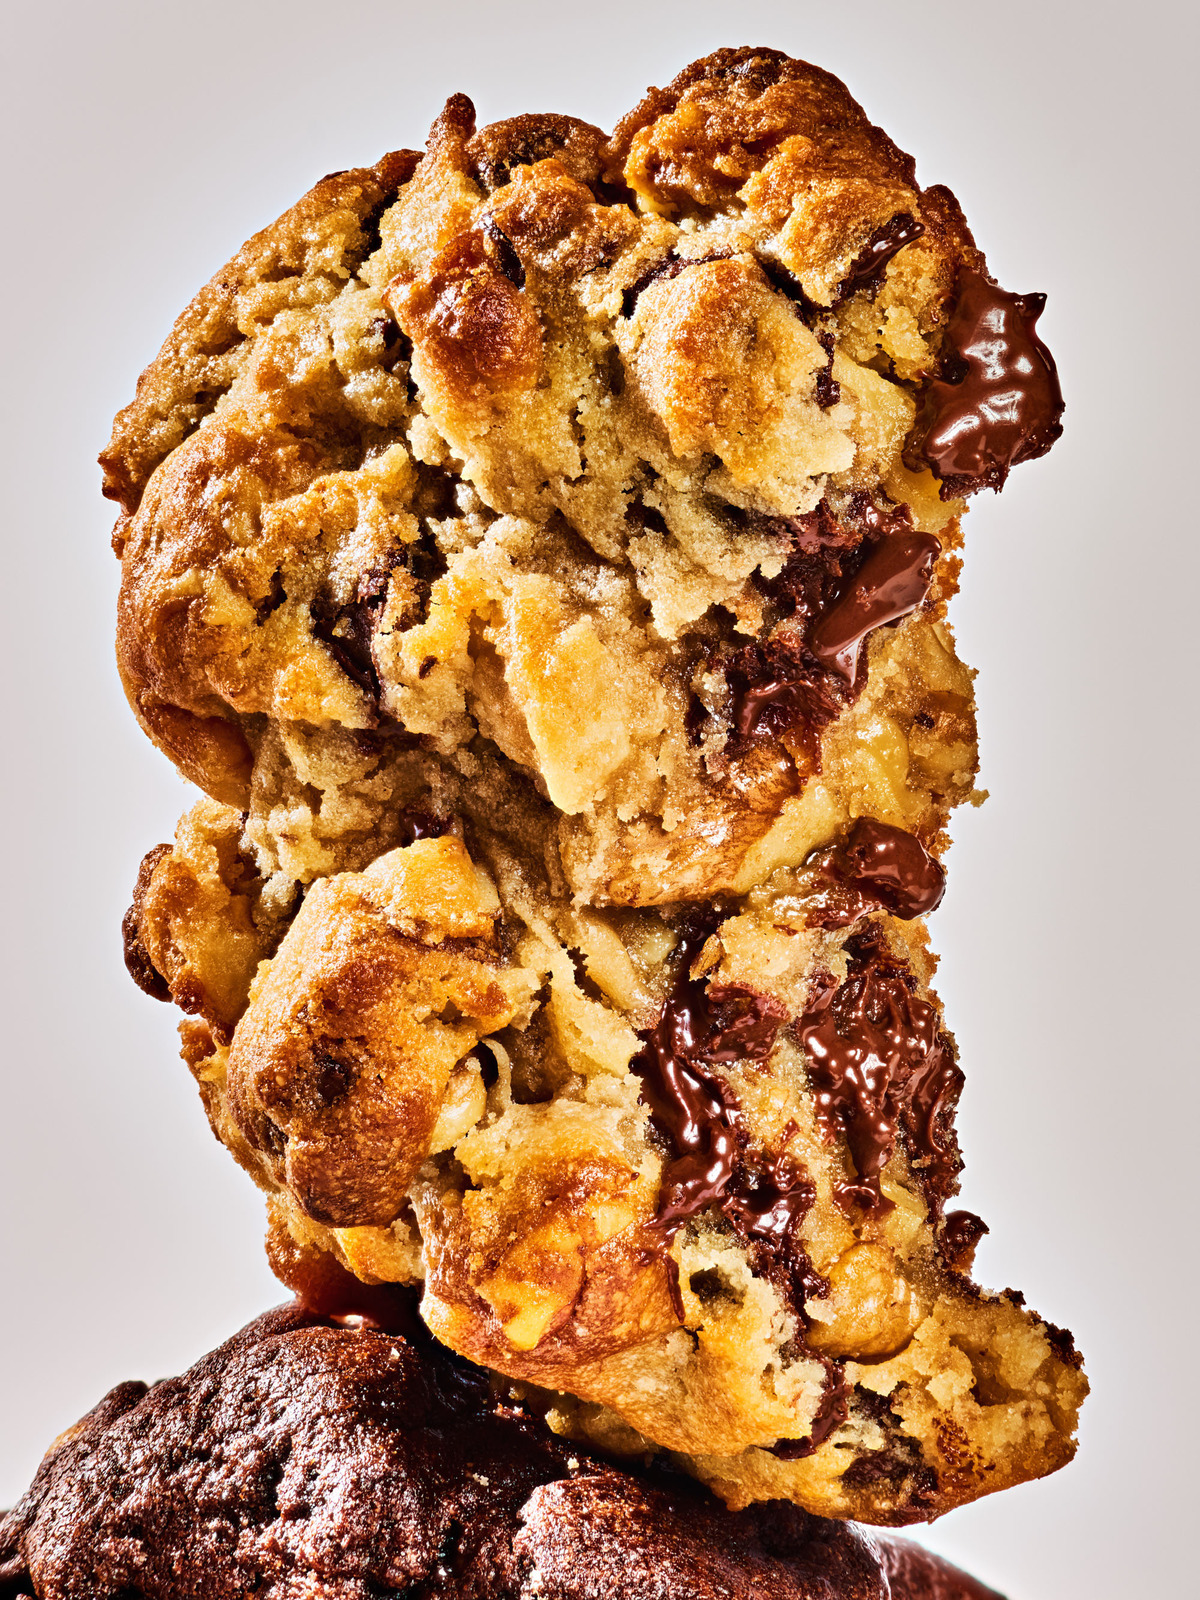 A Big Cookie Gets a Bigger Stage - Photographed by Joe Lingeman